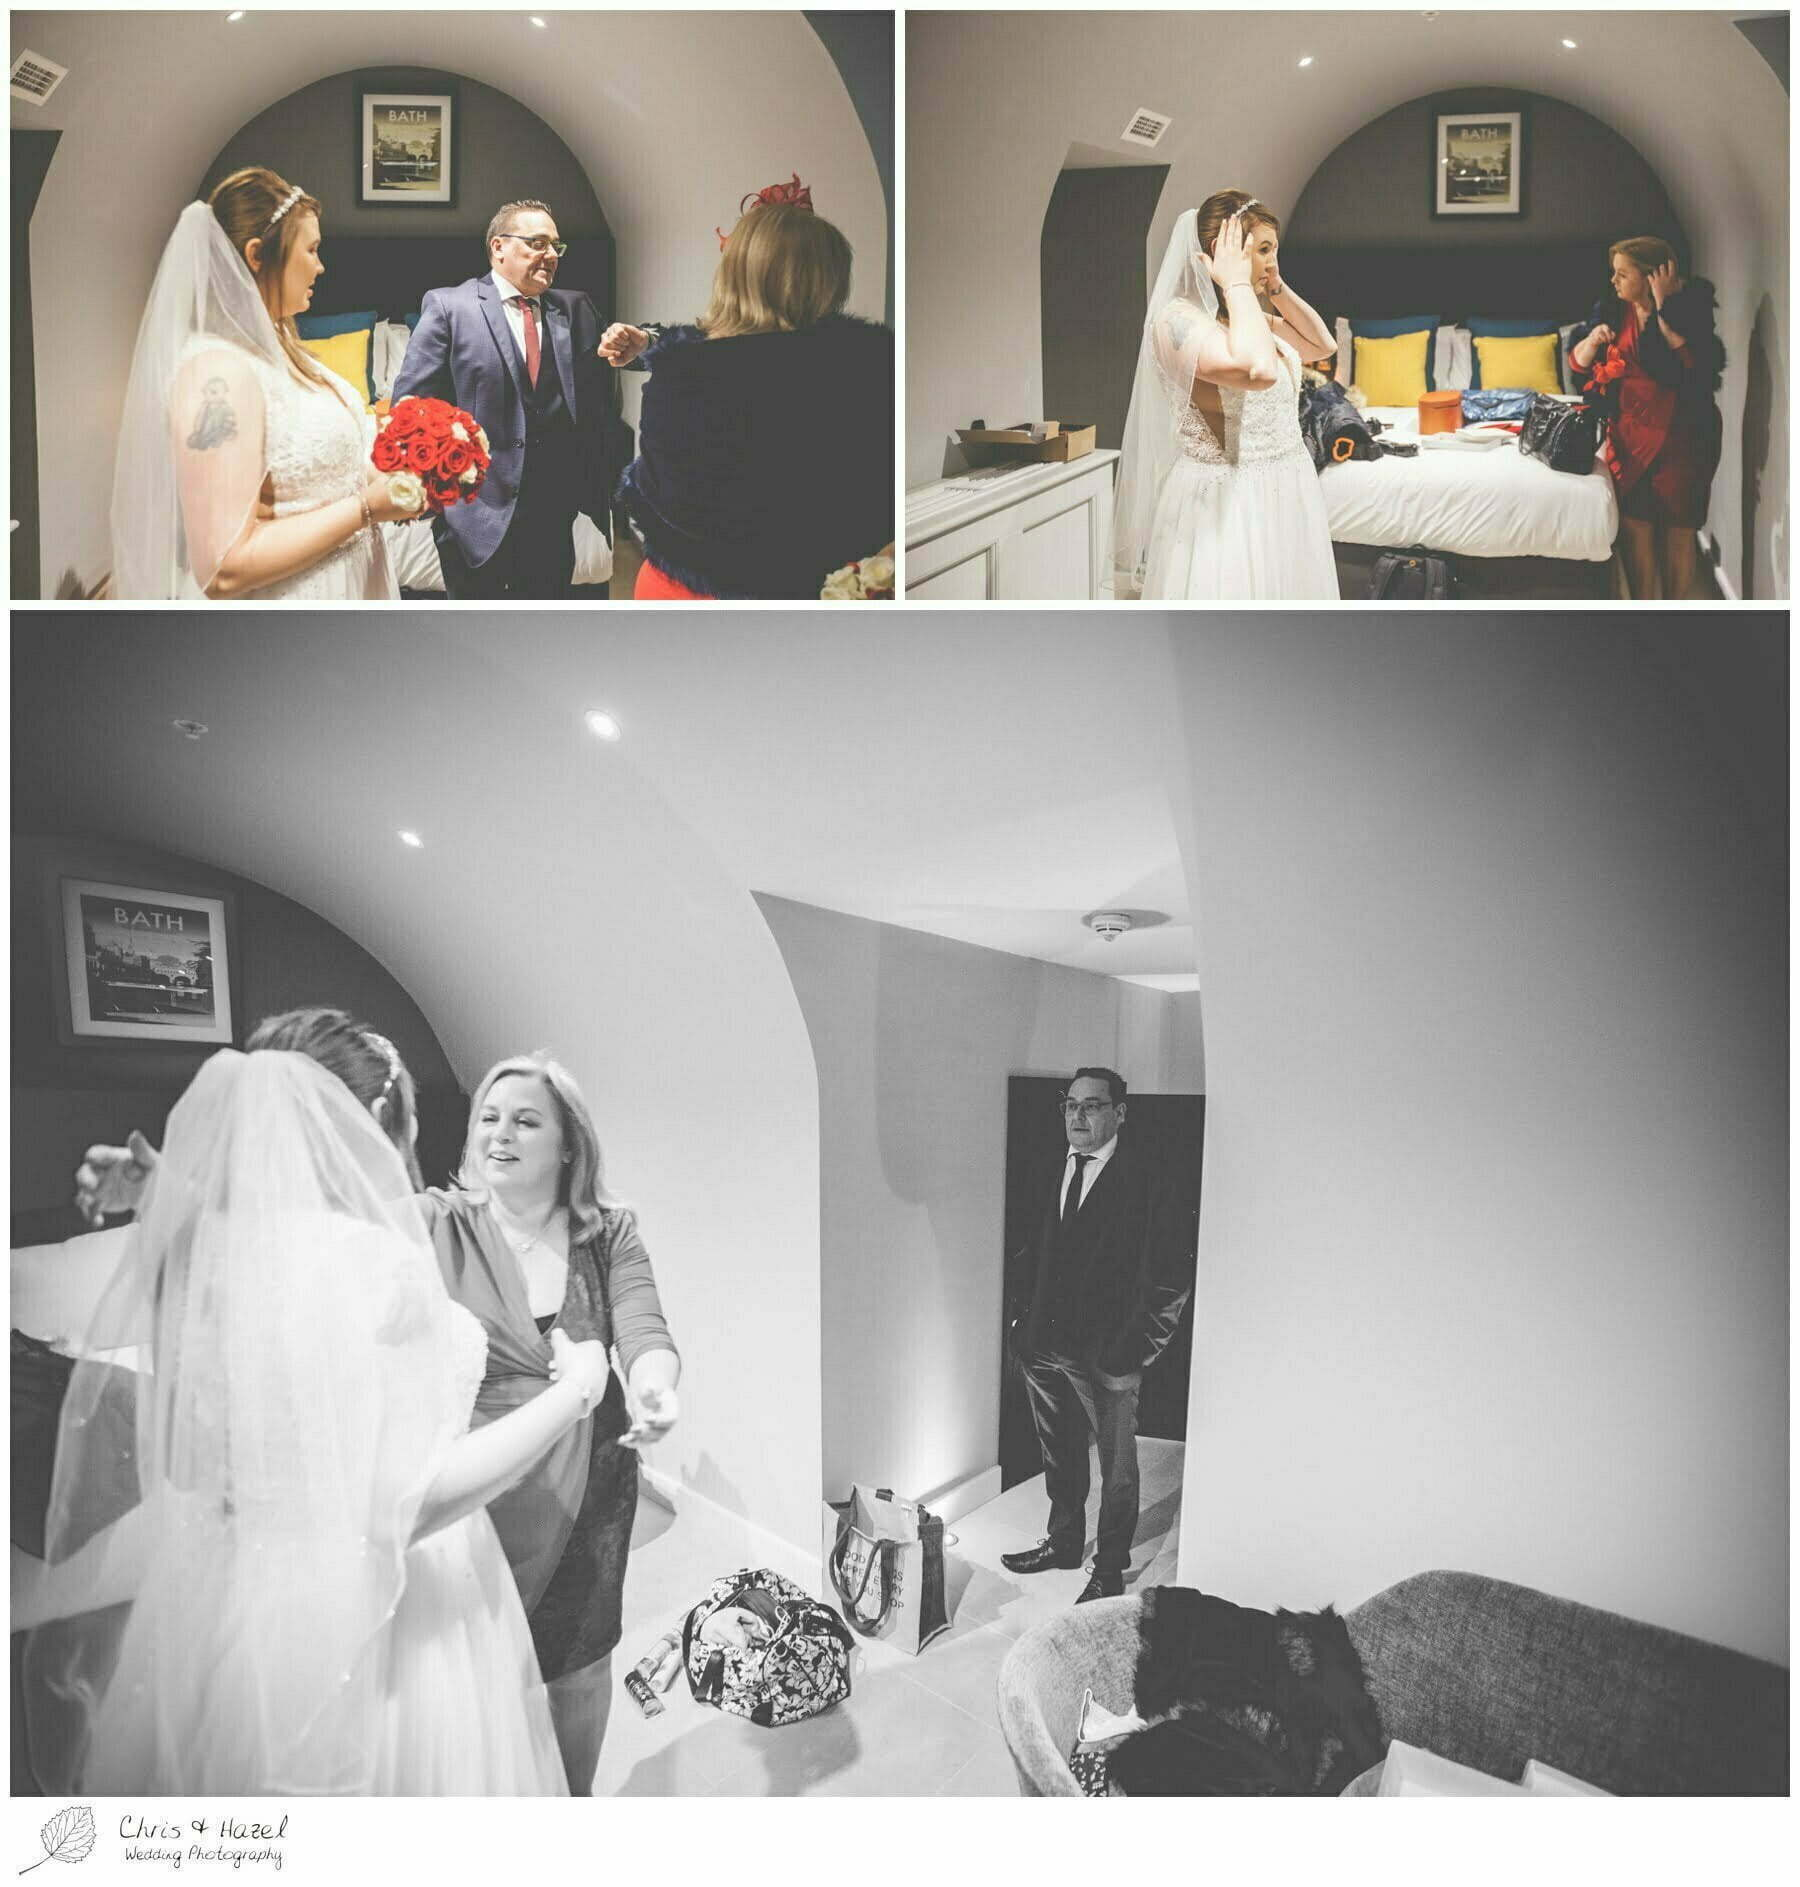 Father of bride, first look, Bride getting ready preparations, Bath Wedding Photography, Hotel indigo bath, Bath Wedding Photographer, Wedding in Bath, Bath Wedding Day, documentary wedding photography, Chris and Hazel Wedding Photography Bath, Sammie Singfield Scott Brown